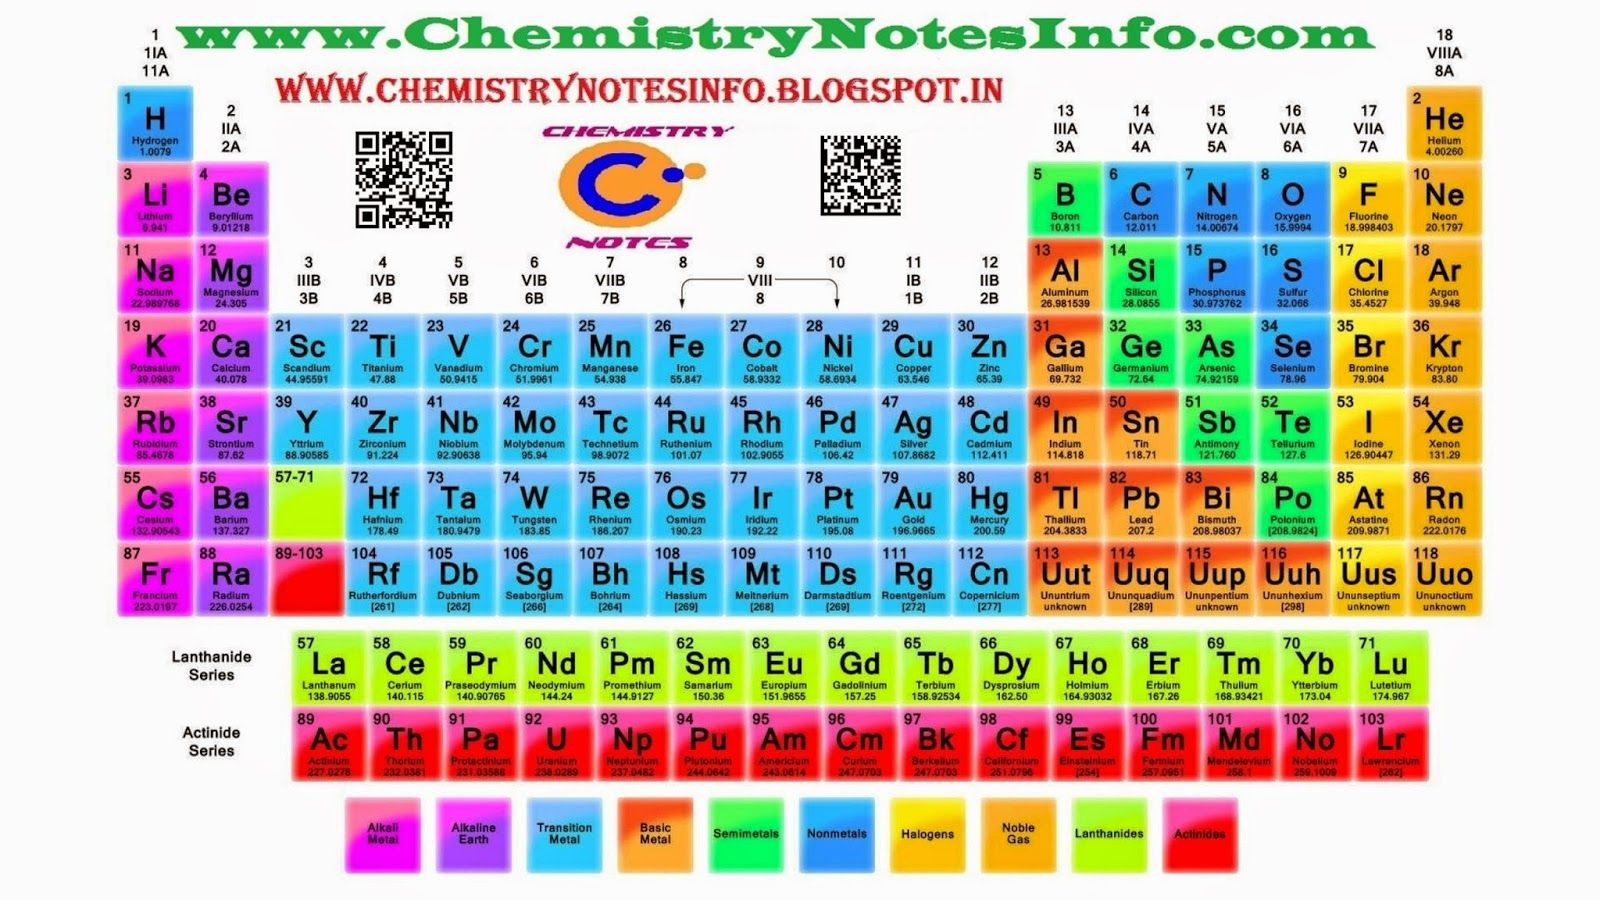 Periodic table of elements by chemistry notes info at www periodic table of elements by chemistry notes info at chemistrynotesinfo urtaz Choice Image